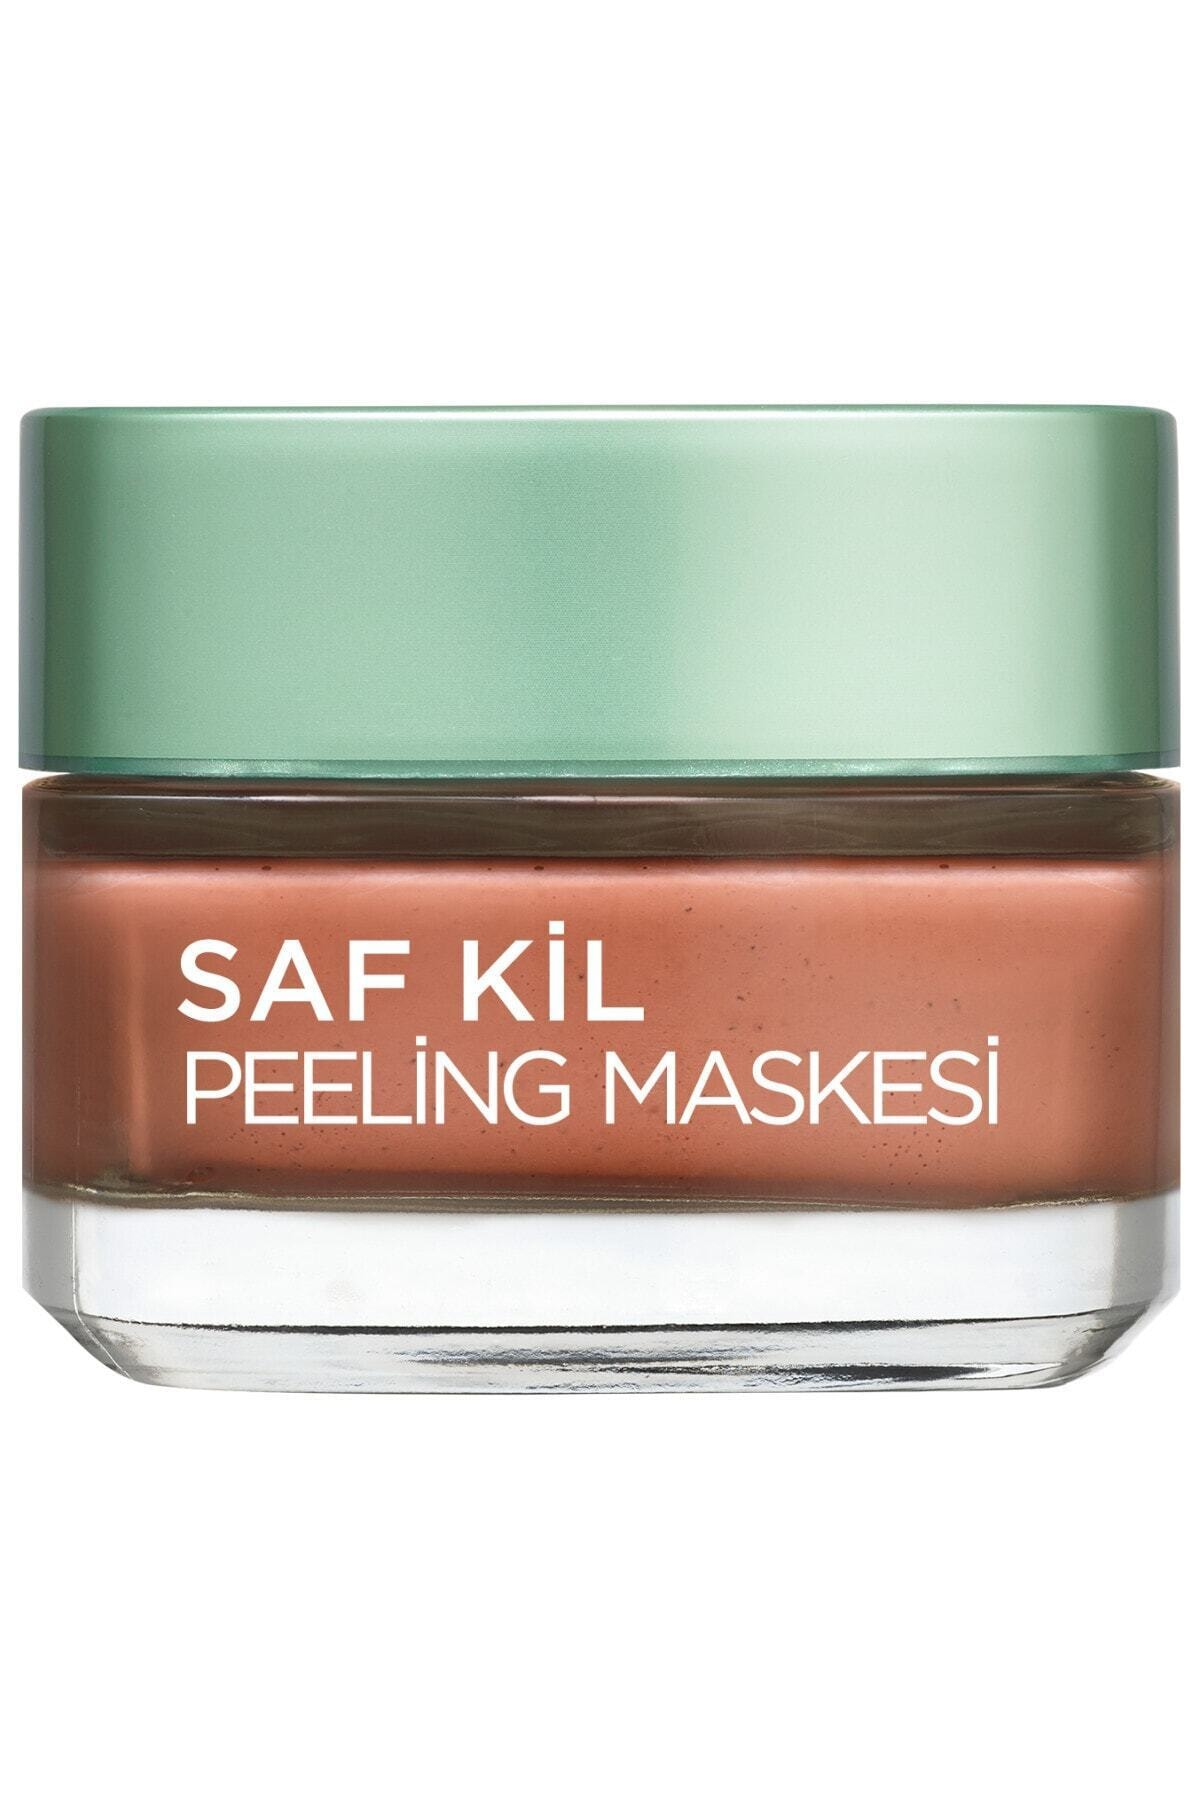 L'Oreal Paris Saf Kil Peeling Maskesi - Pure Clay 50 Ml 3600523306367 1